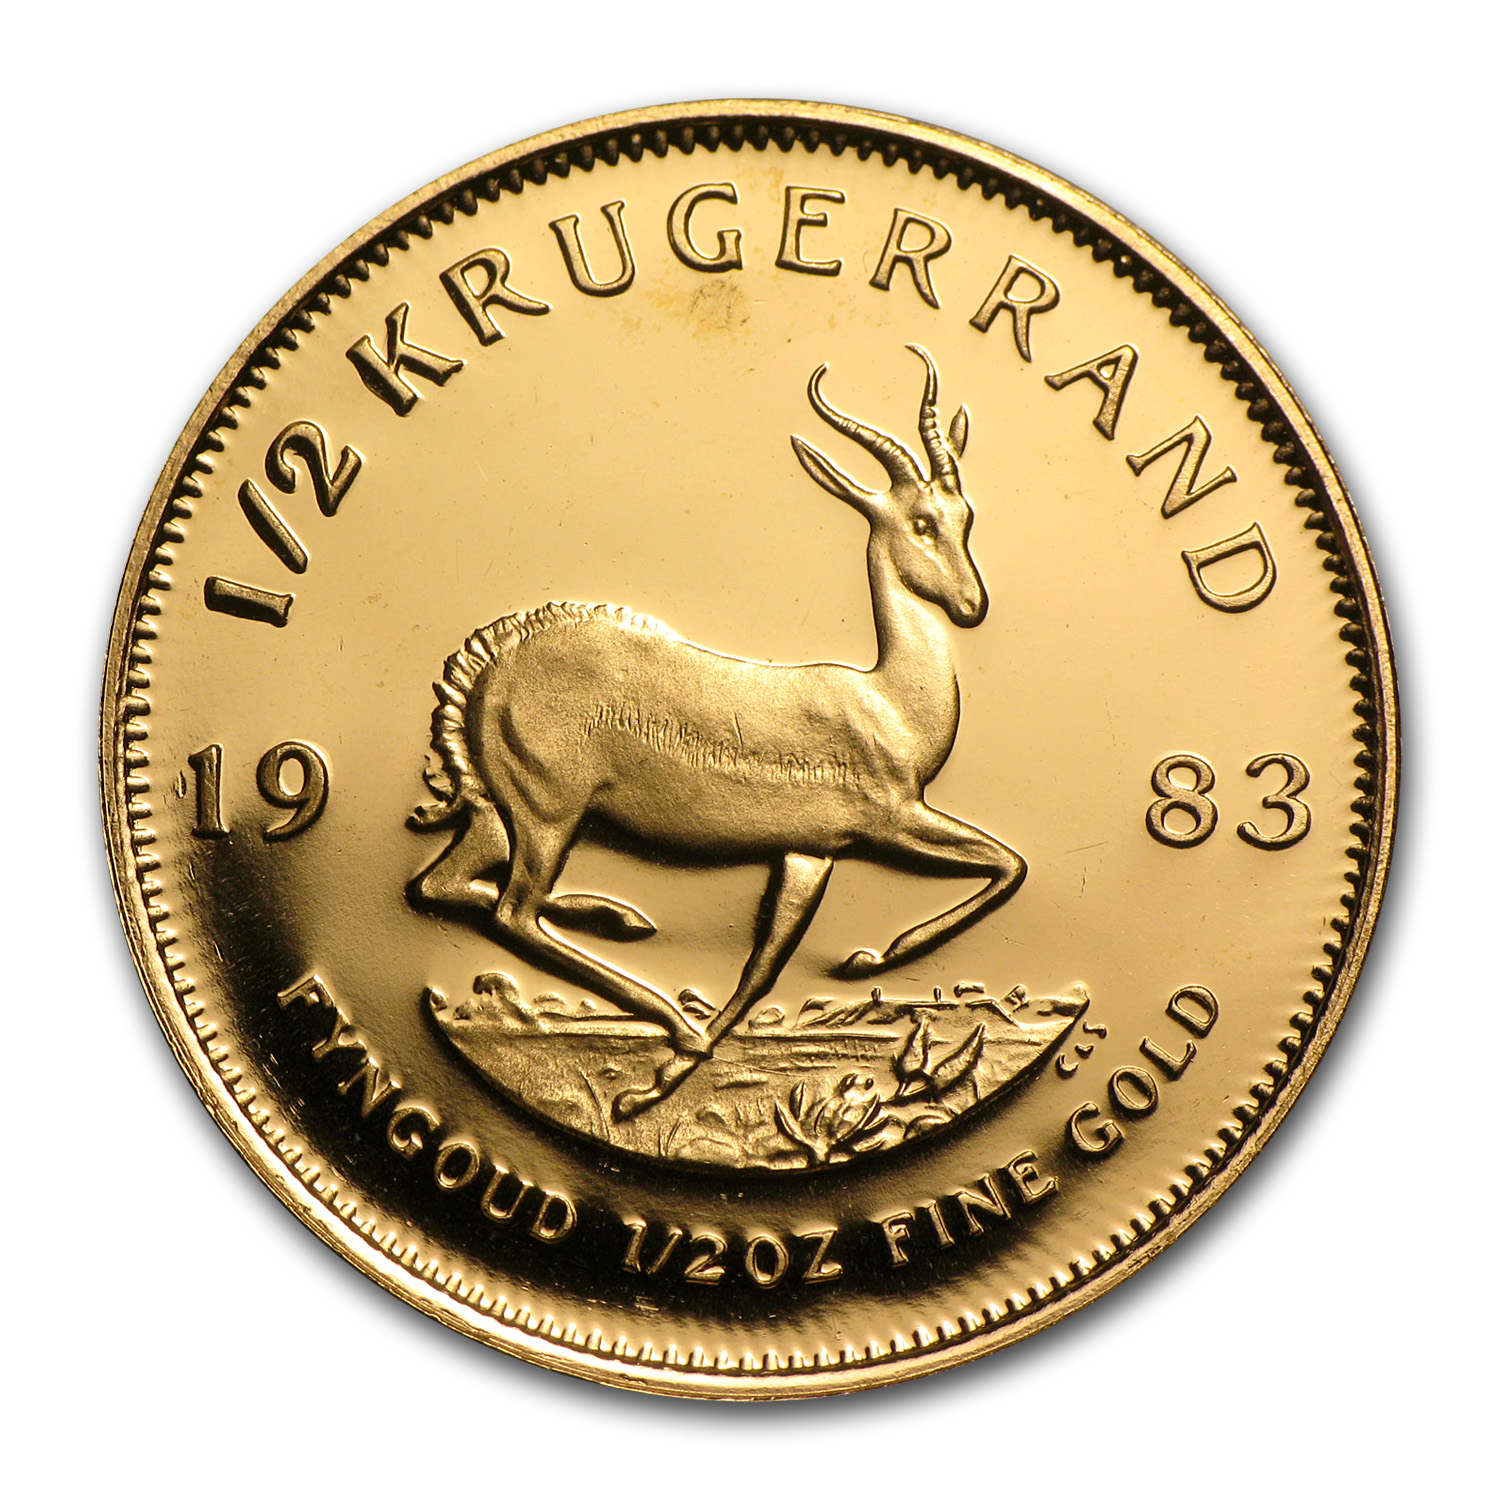 1983 1/2 oz Gold South African Krugerrand (Proof)